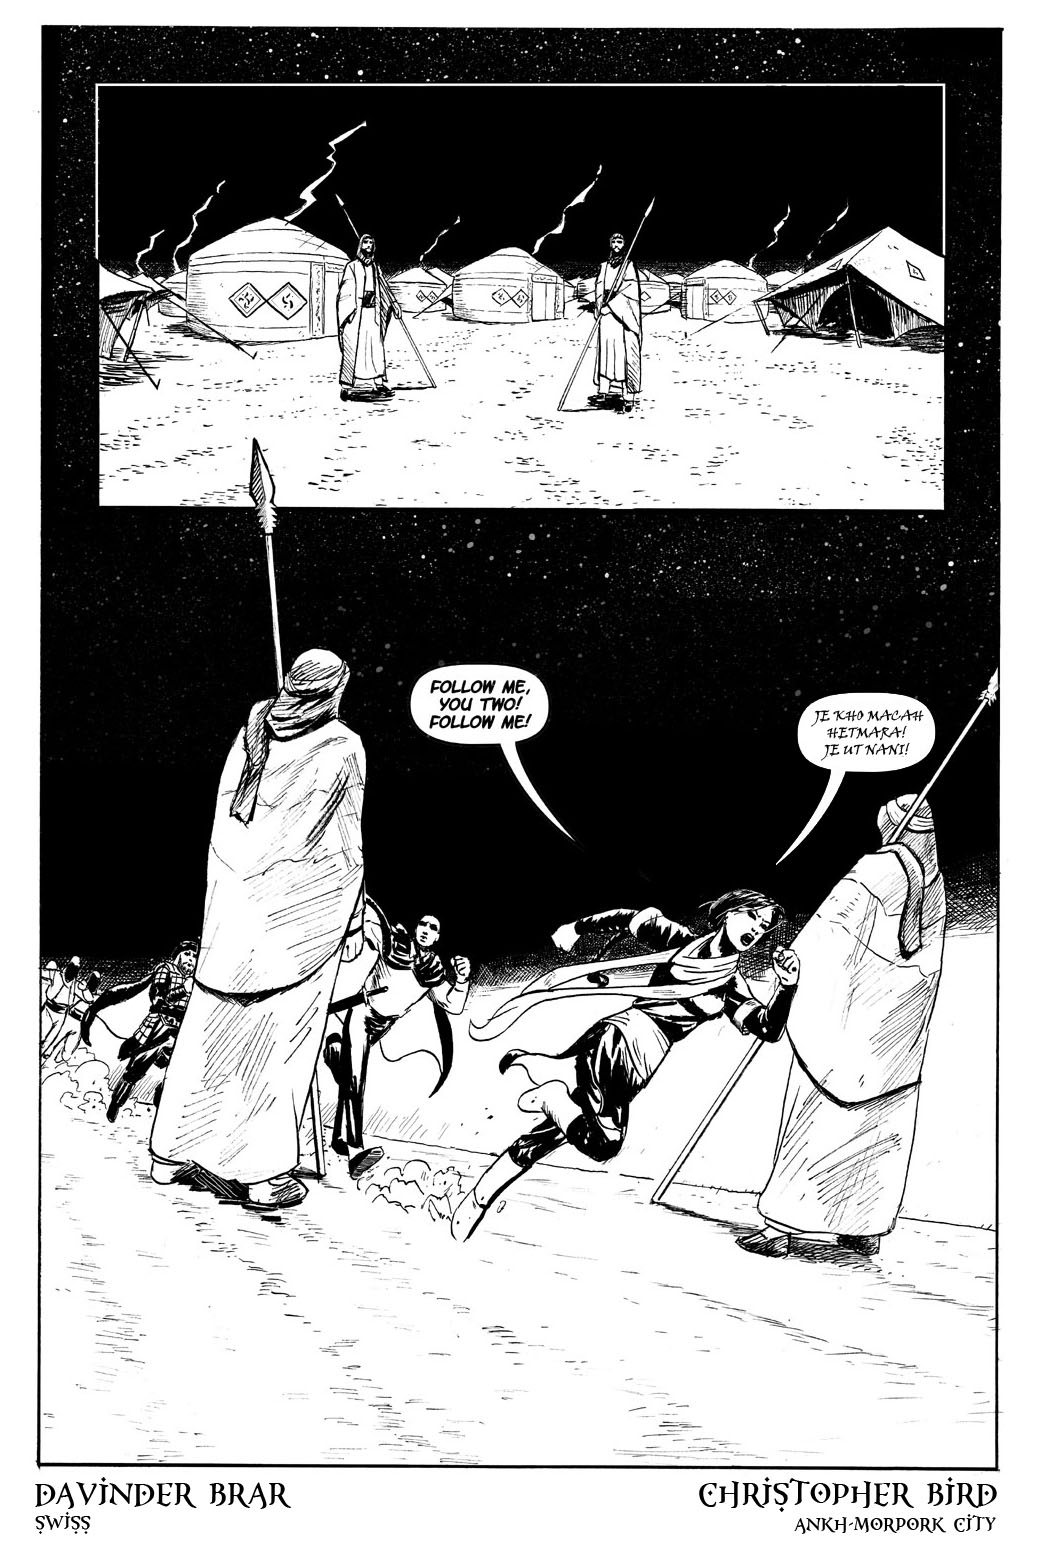 Book 4, page 21